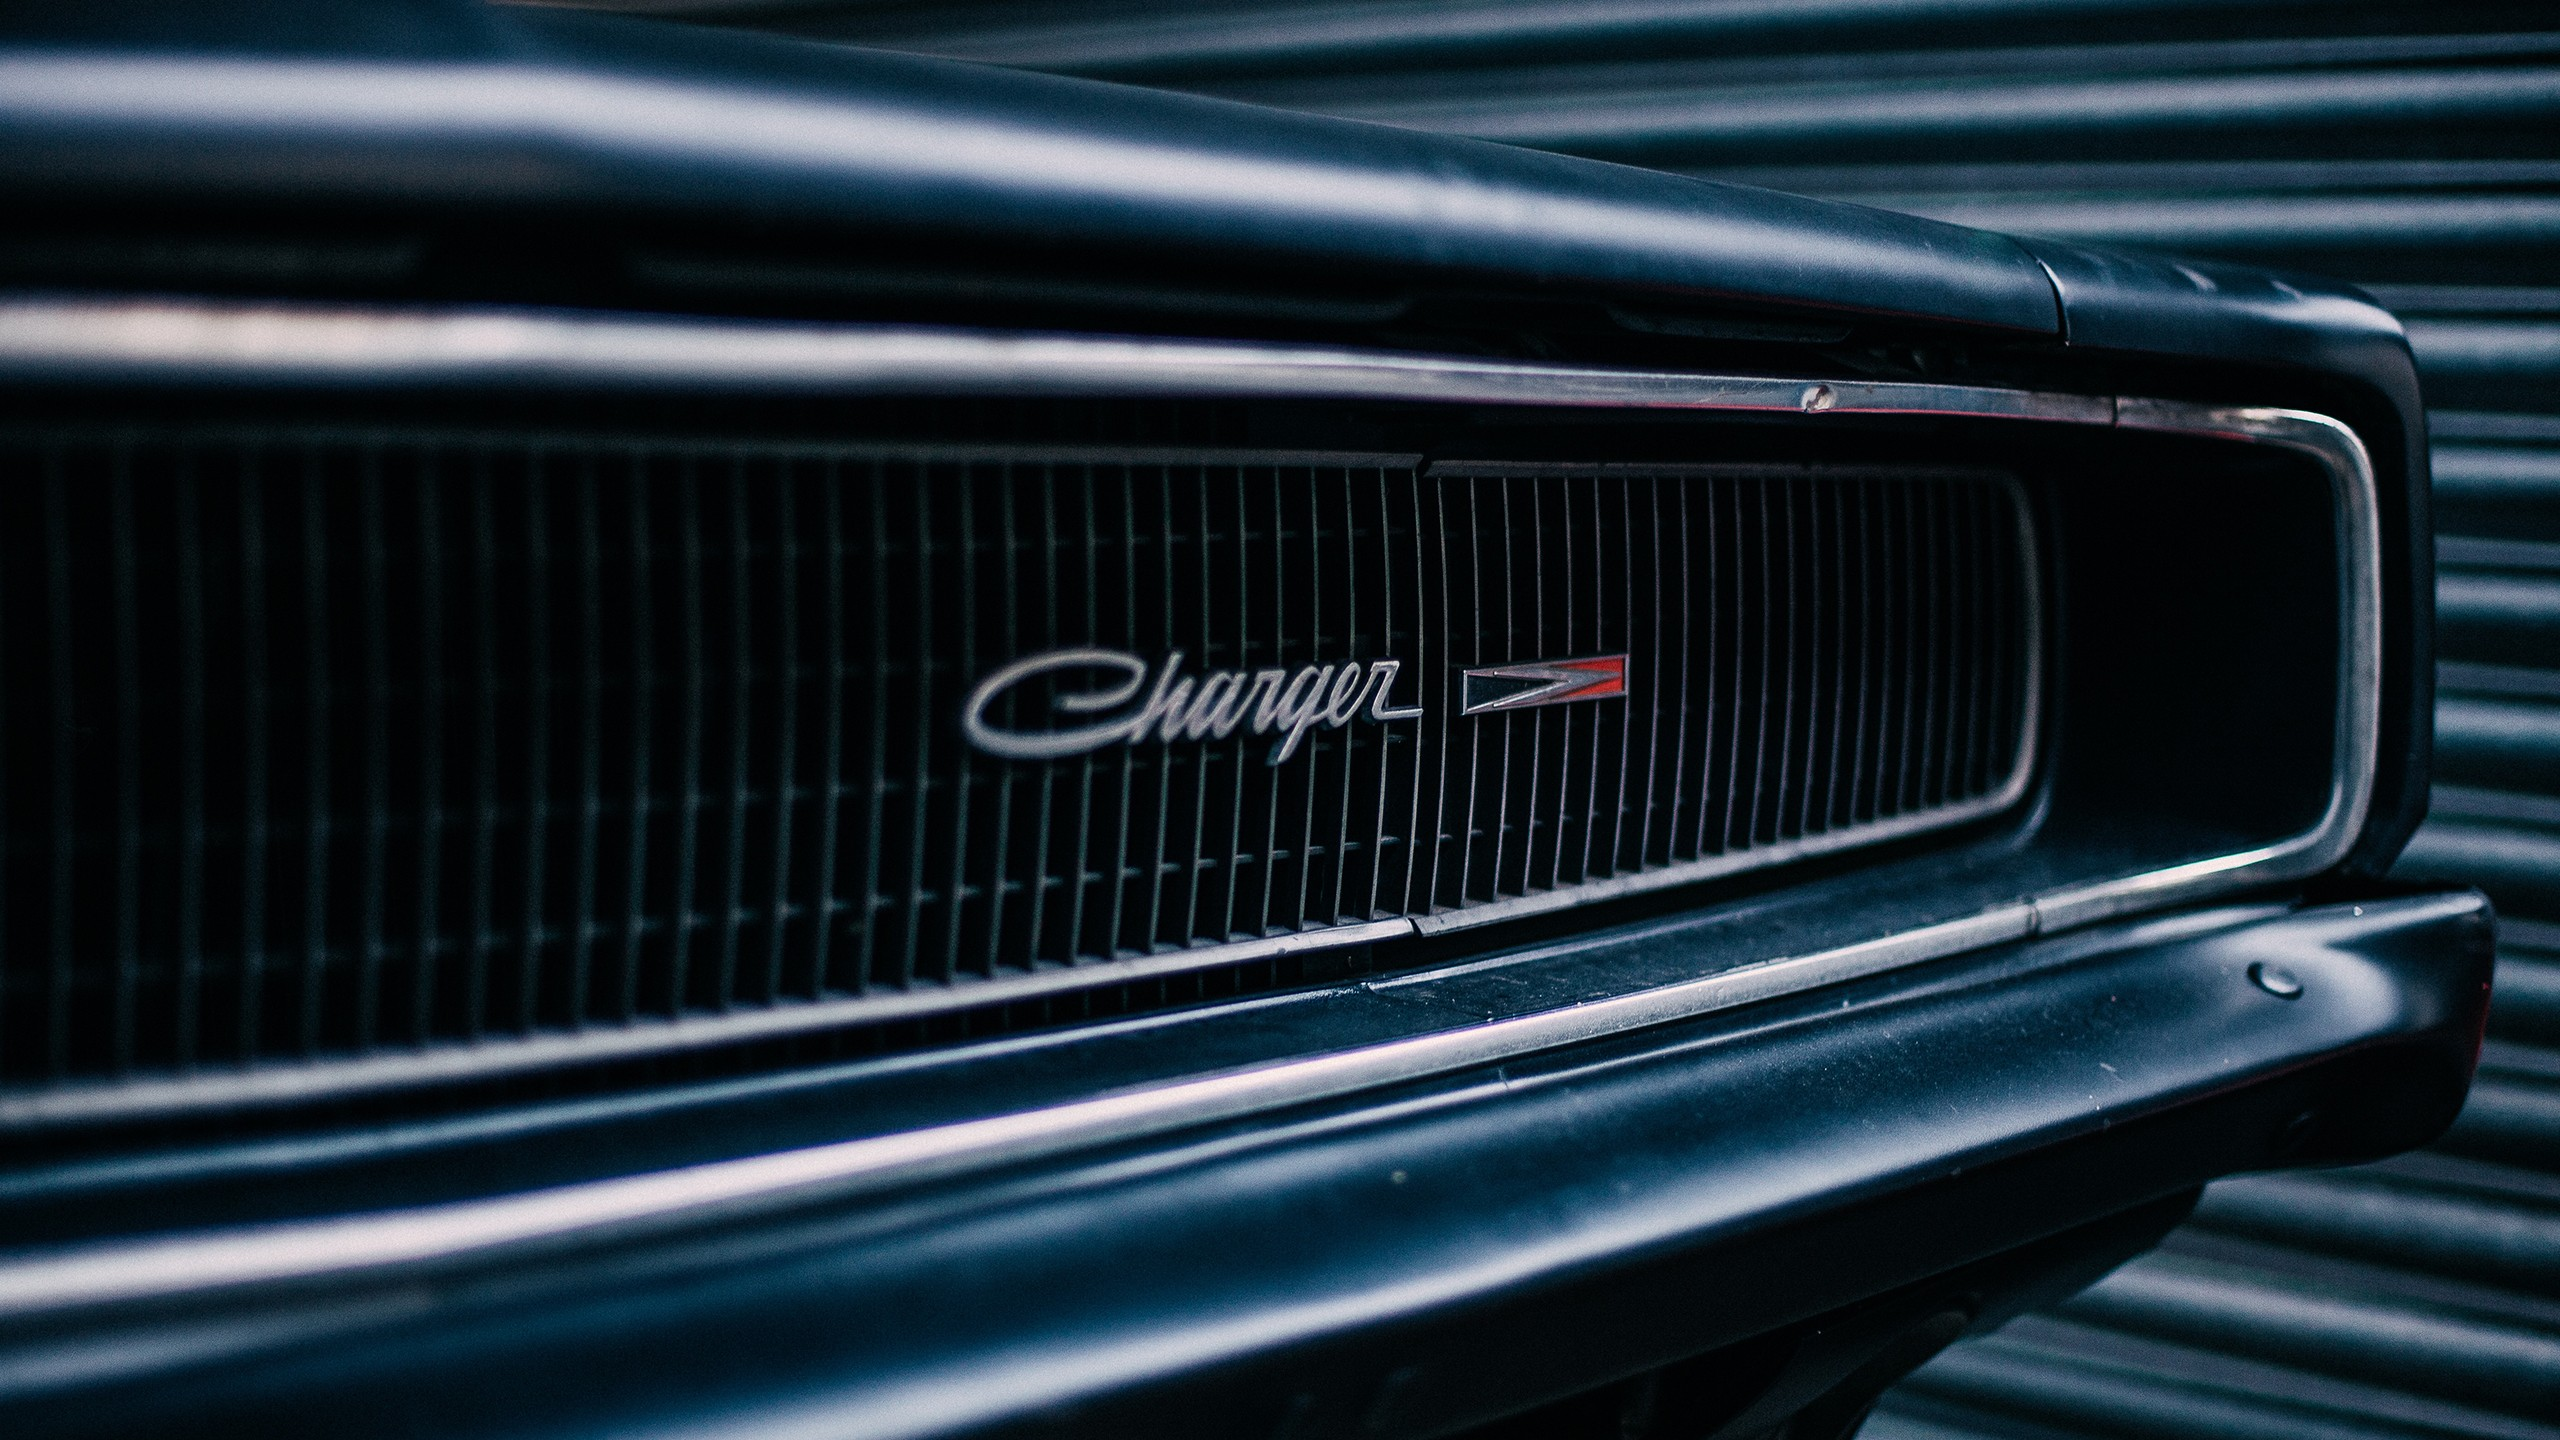 Charger Dodge Car Vehicle Dodge Charger American Cars Photography Lines Pop Up Headlights Closeup Wallpaper Resolution 2560x1440 Id 118223 Wallha Com